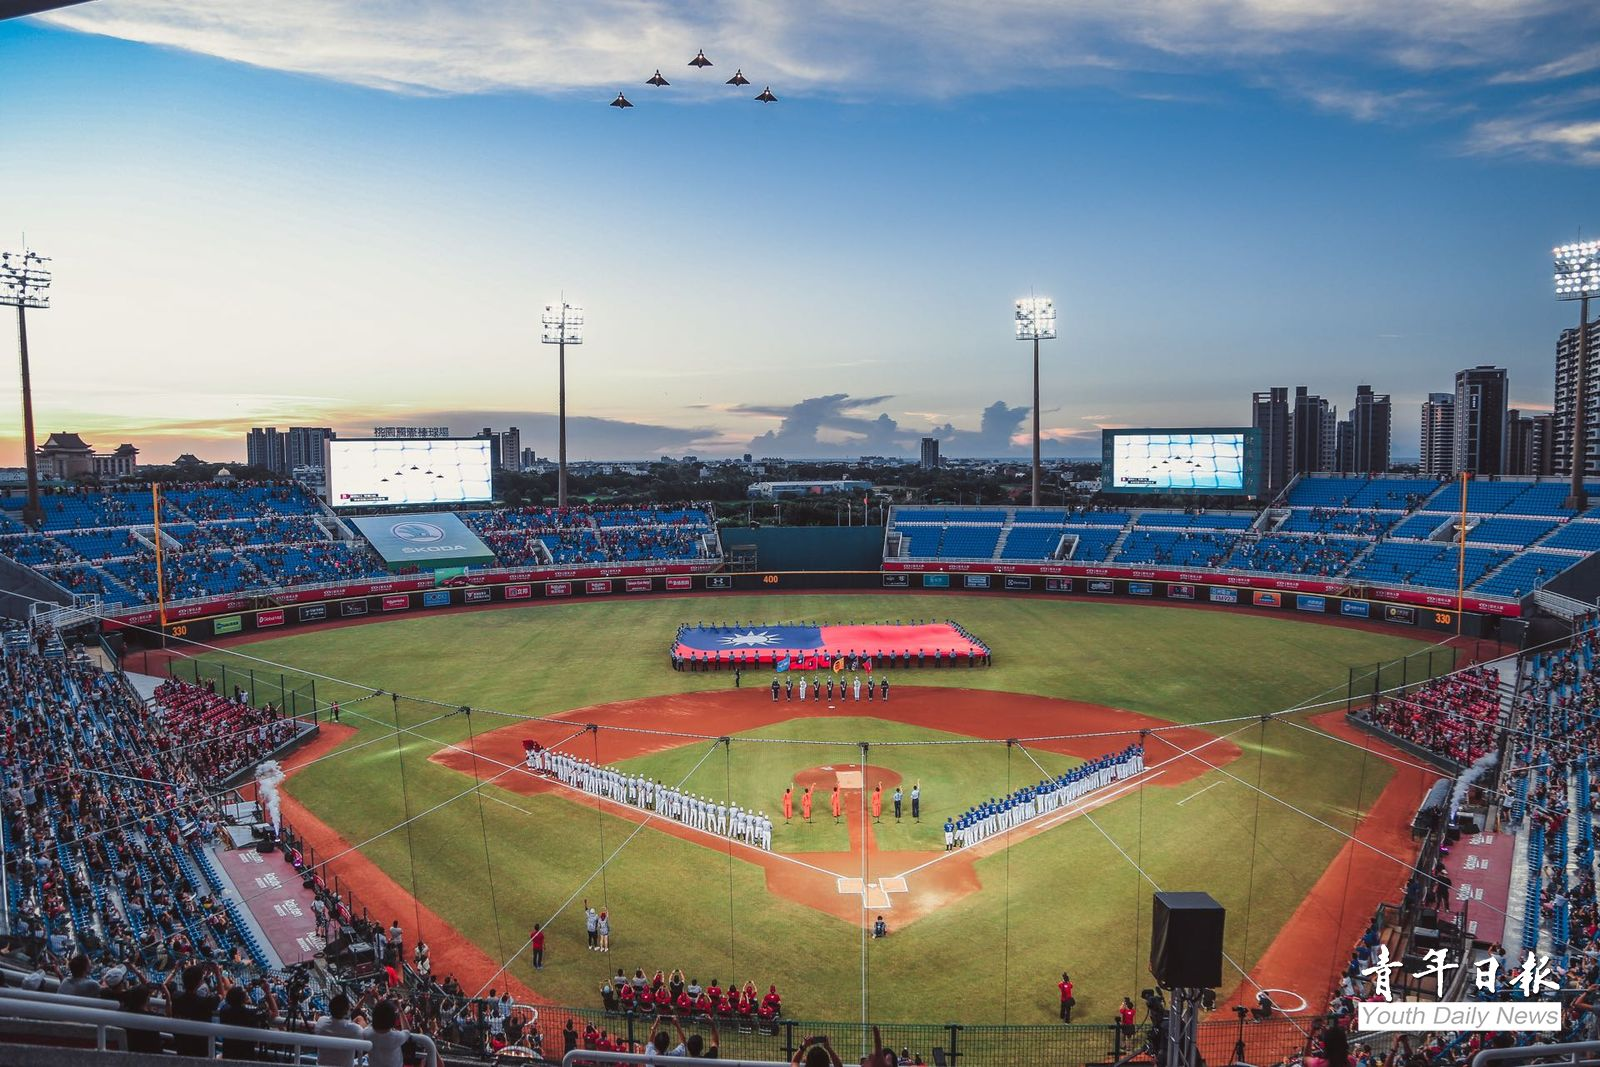 CPBL Kick-off Activity Shows Respect to Armed Forces